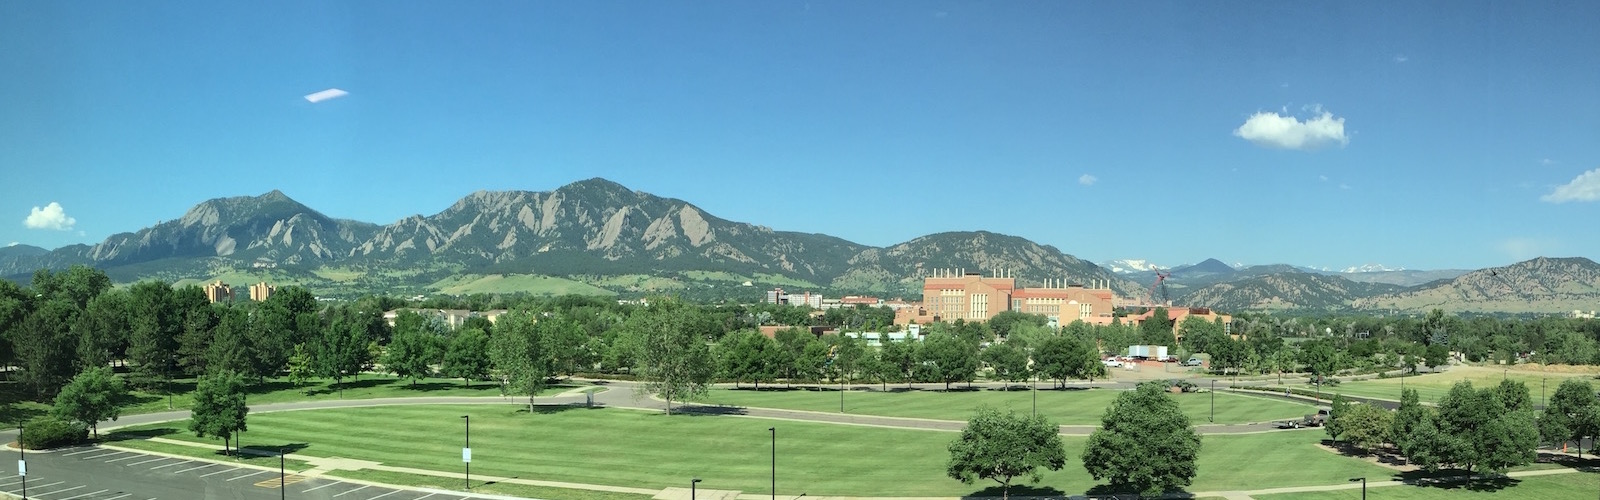 View from SEEC